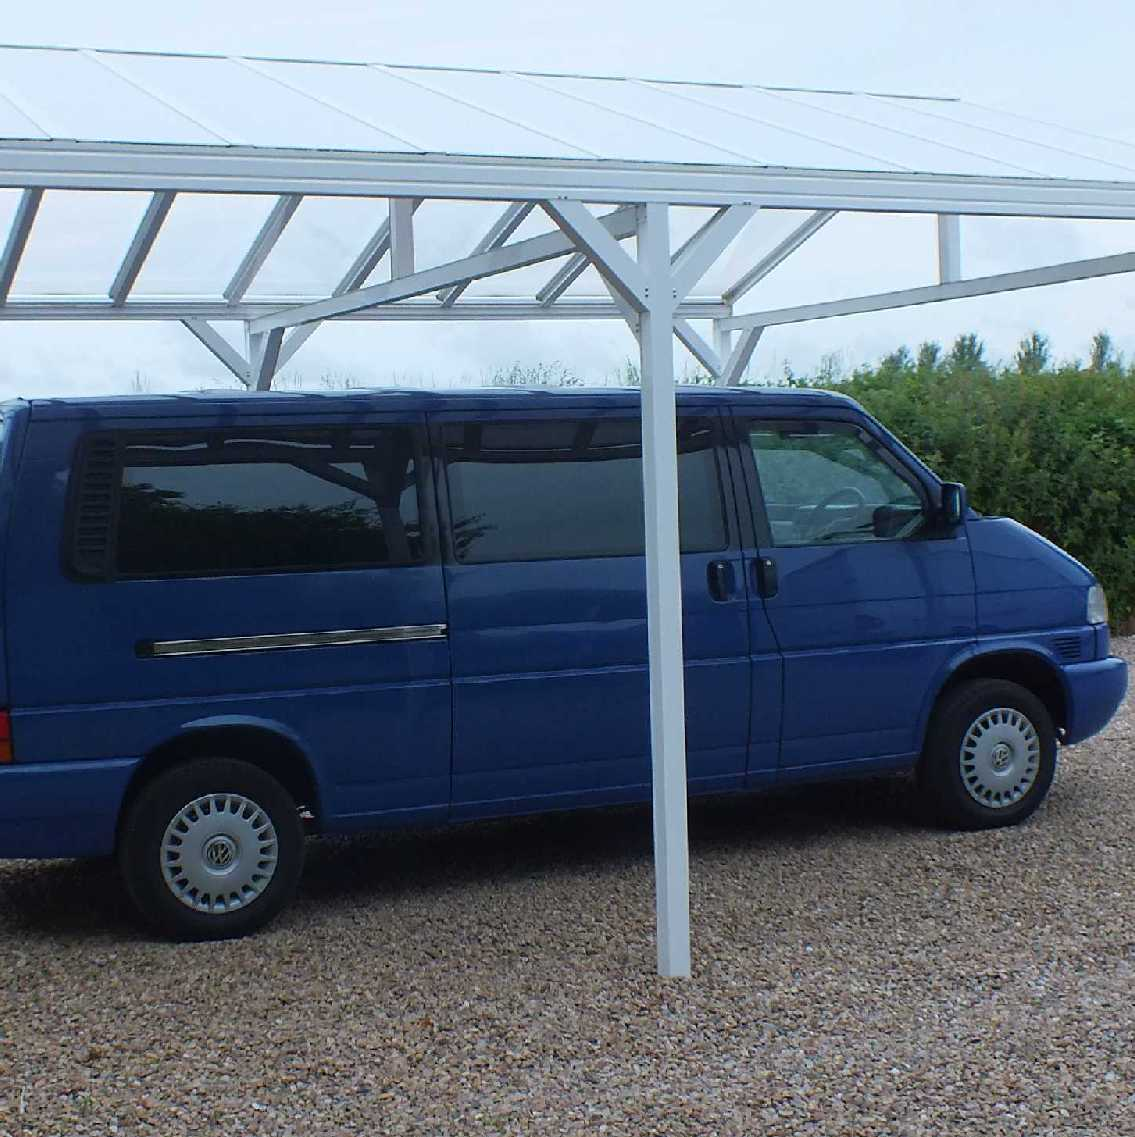 Great deals on Omega Smart Free-Standing, Gable-Roof (type 1) Canopy with 16mm Polycarbonate Glazing - 5.2m (W) x 3.5m (P), (6) Supporting Posts